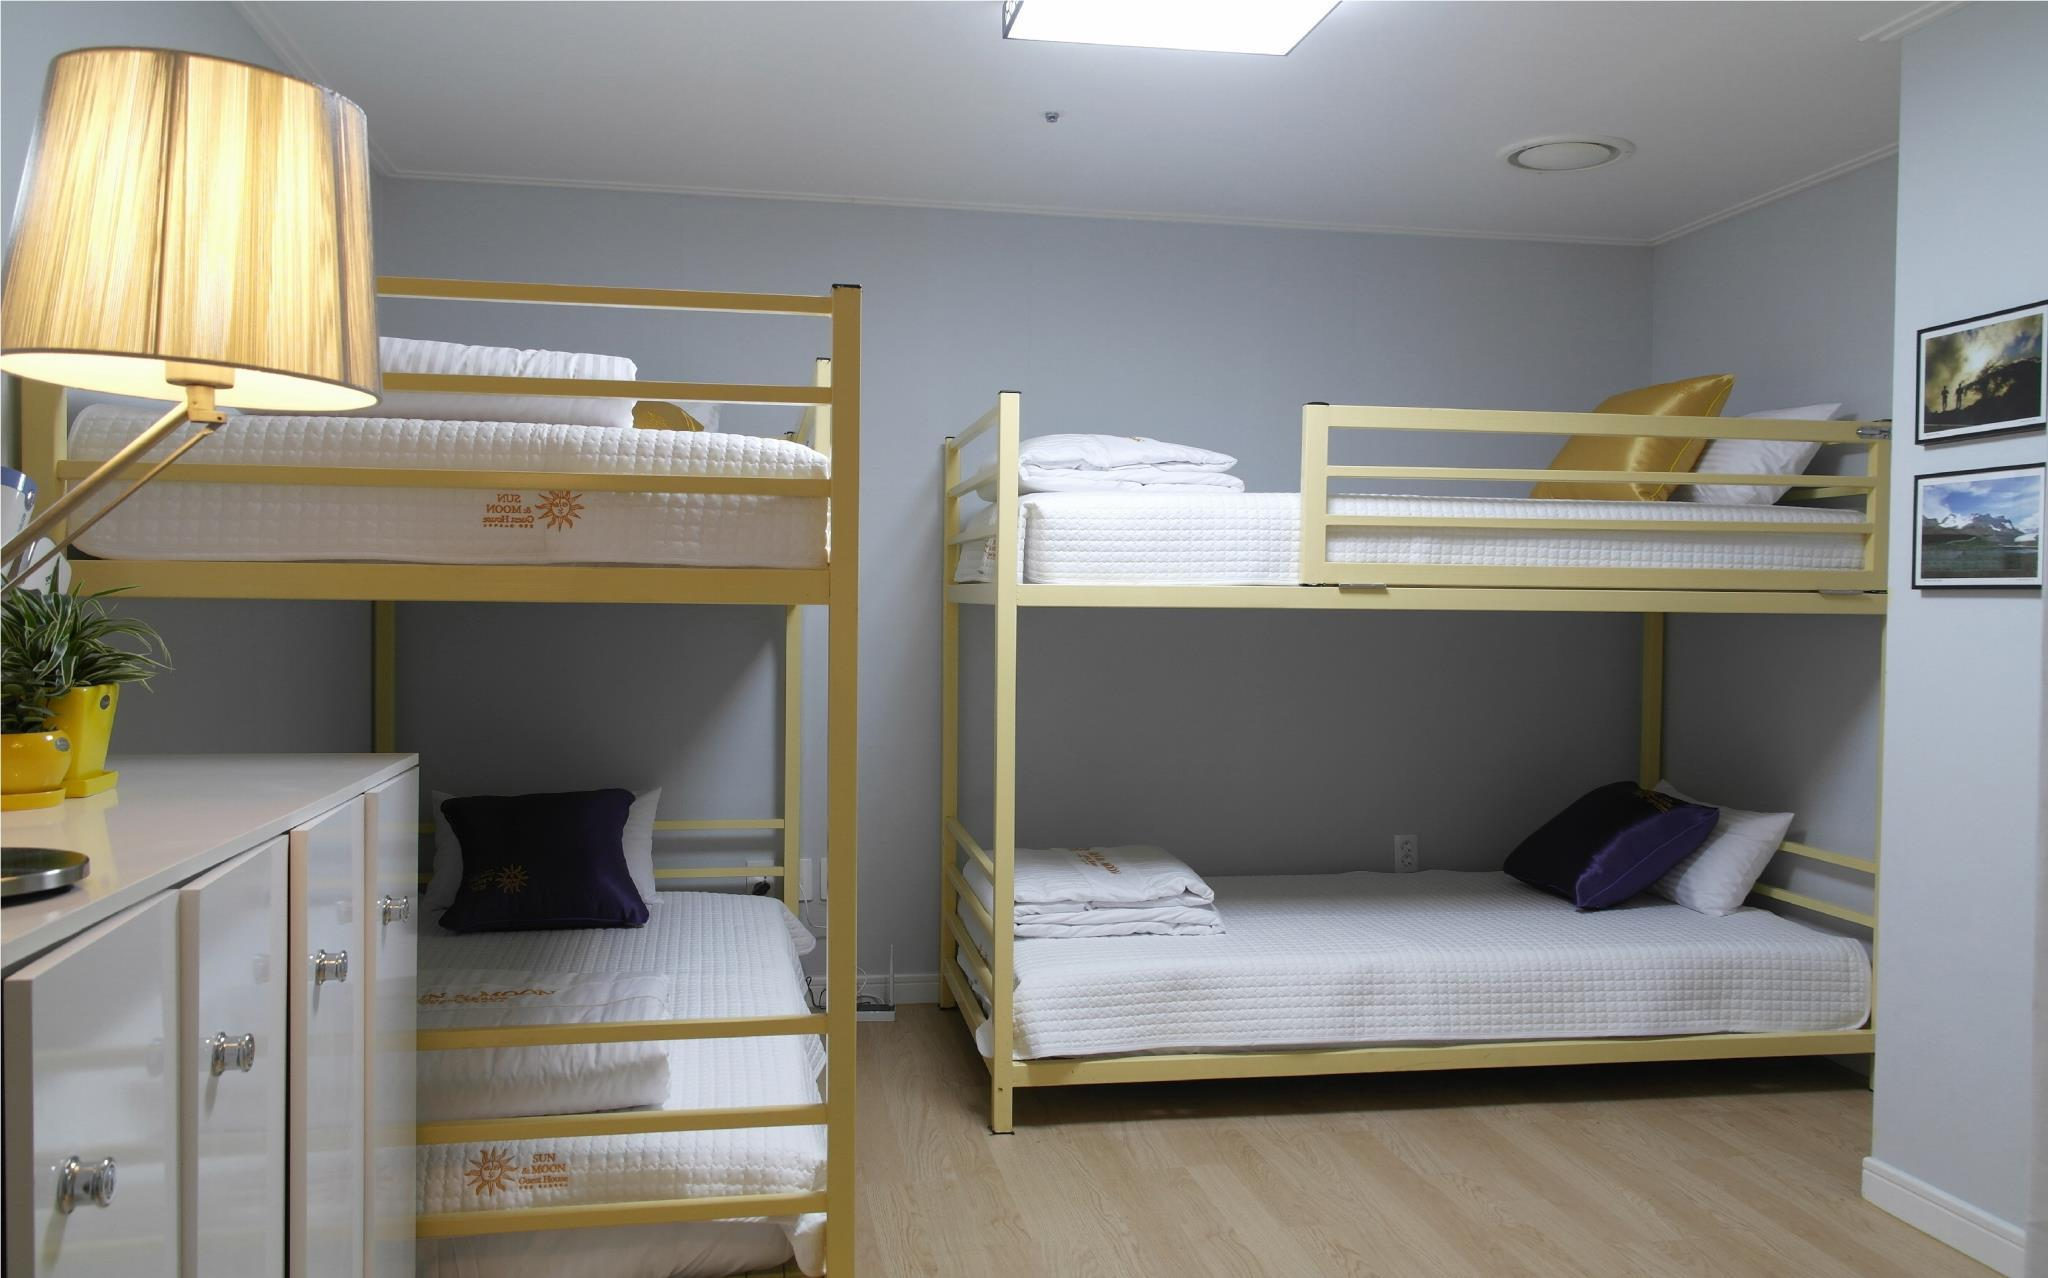 1 persona en habitación compartida de 4 camas ‒ Sólo mujeres (1 Person in 4-Bed Dormitory - Female Only)